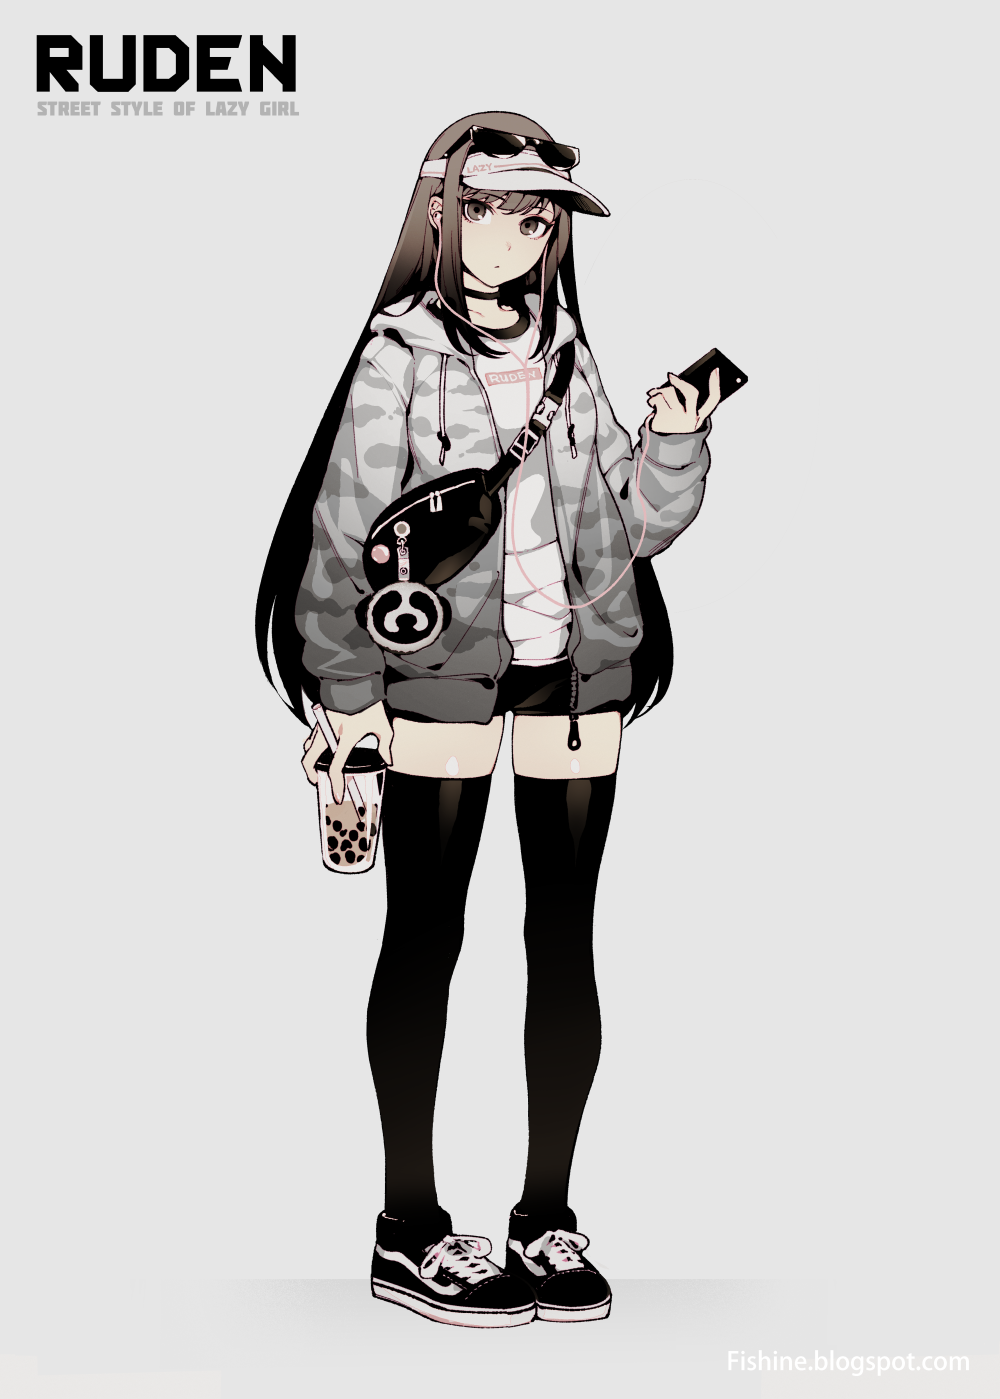 1girl bag black_eyes black_hair black_legwear bubble_tea choker digital_media_player earphones earphones eyewear_on_head fishine full_body grey_background highres hood hooded_jacket hoodie jacket long_hair looking_at_viewer open_clothes open_hoodie open_jacket original shoes short_shorts shorts shoulder_bag sidelocks simple_background sneakers solo standing sunglasses thigh-highs visor_cap